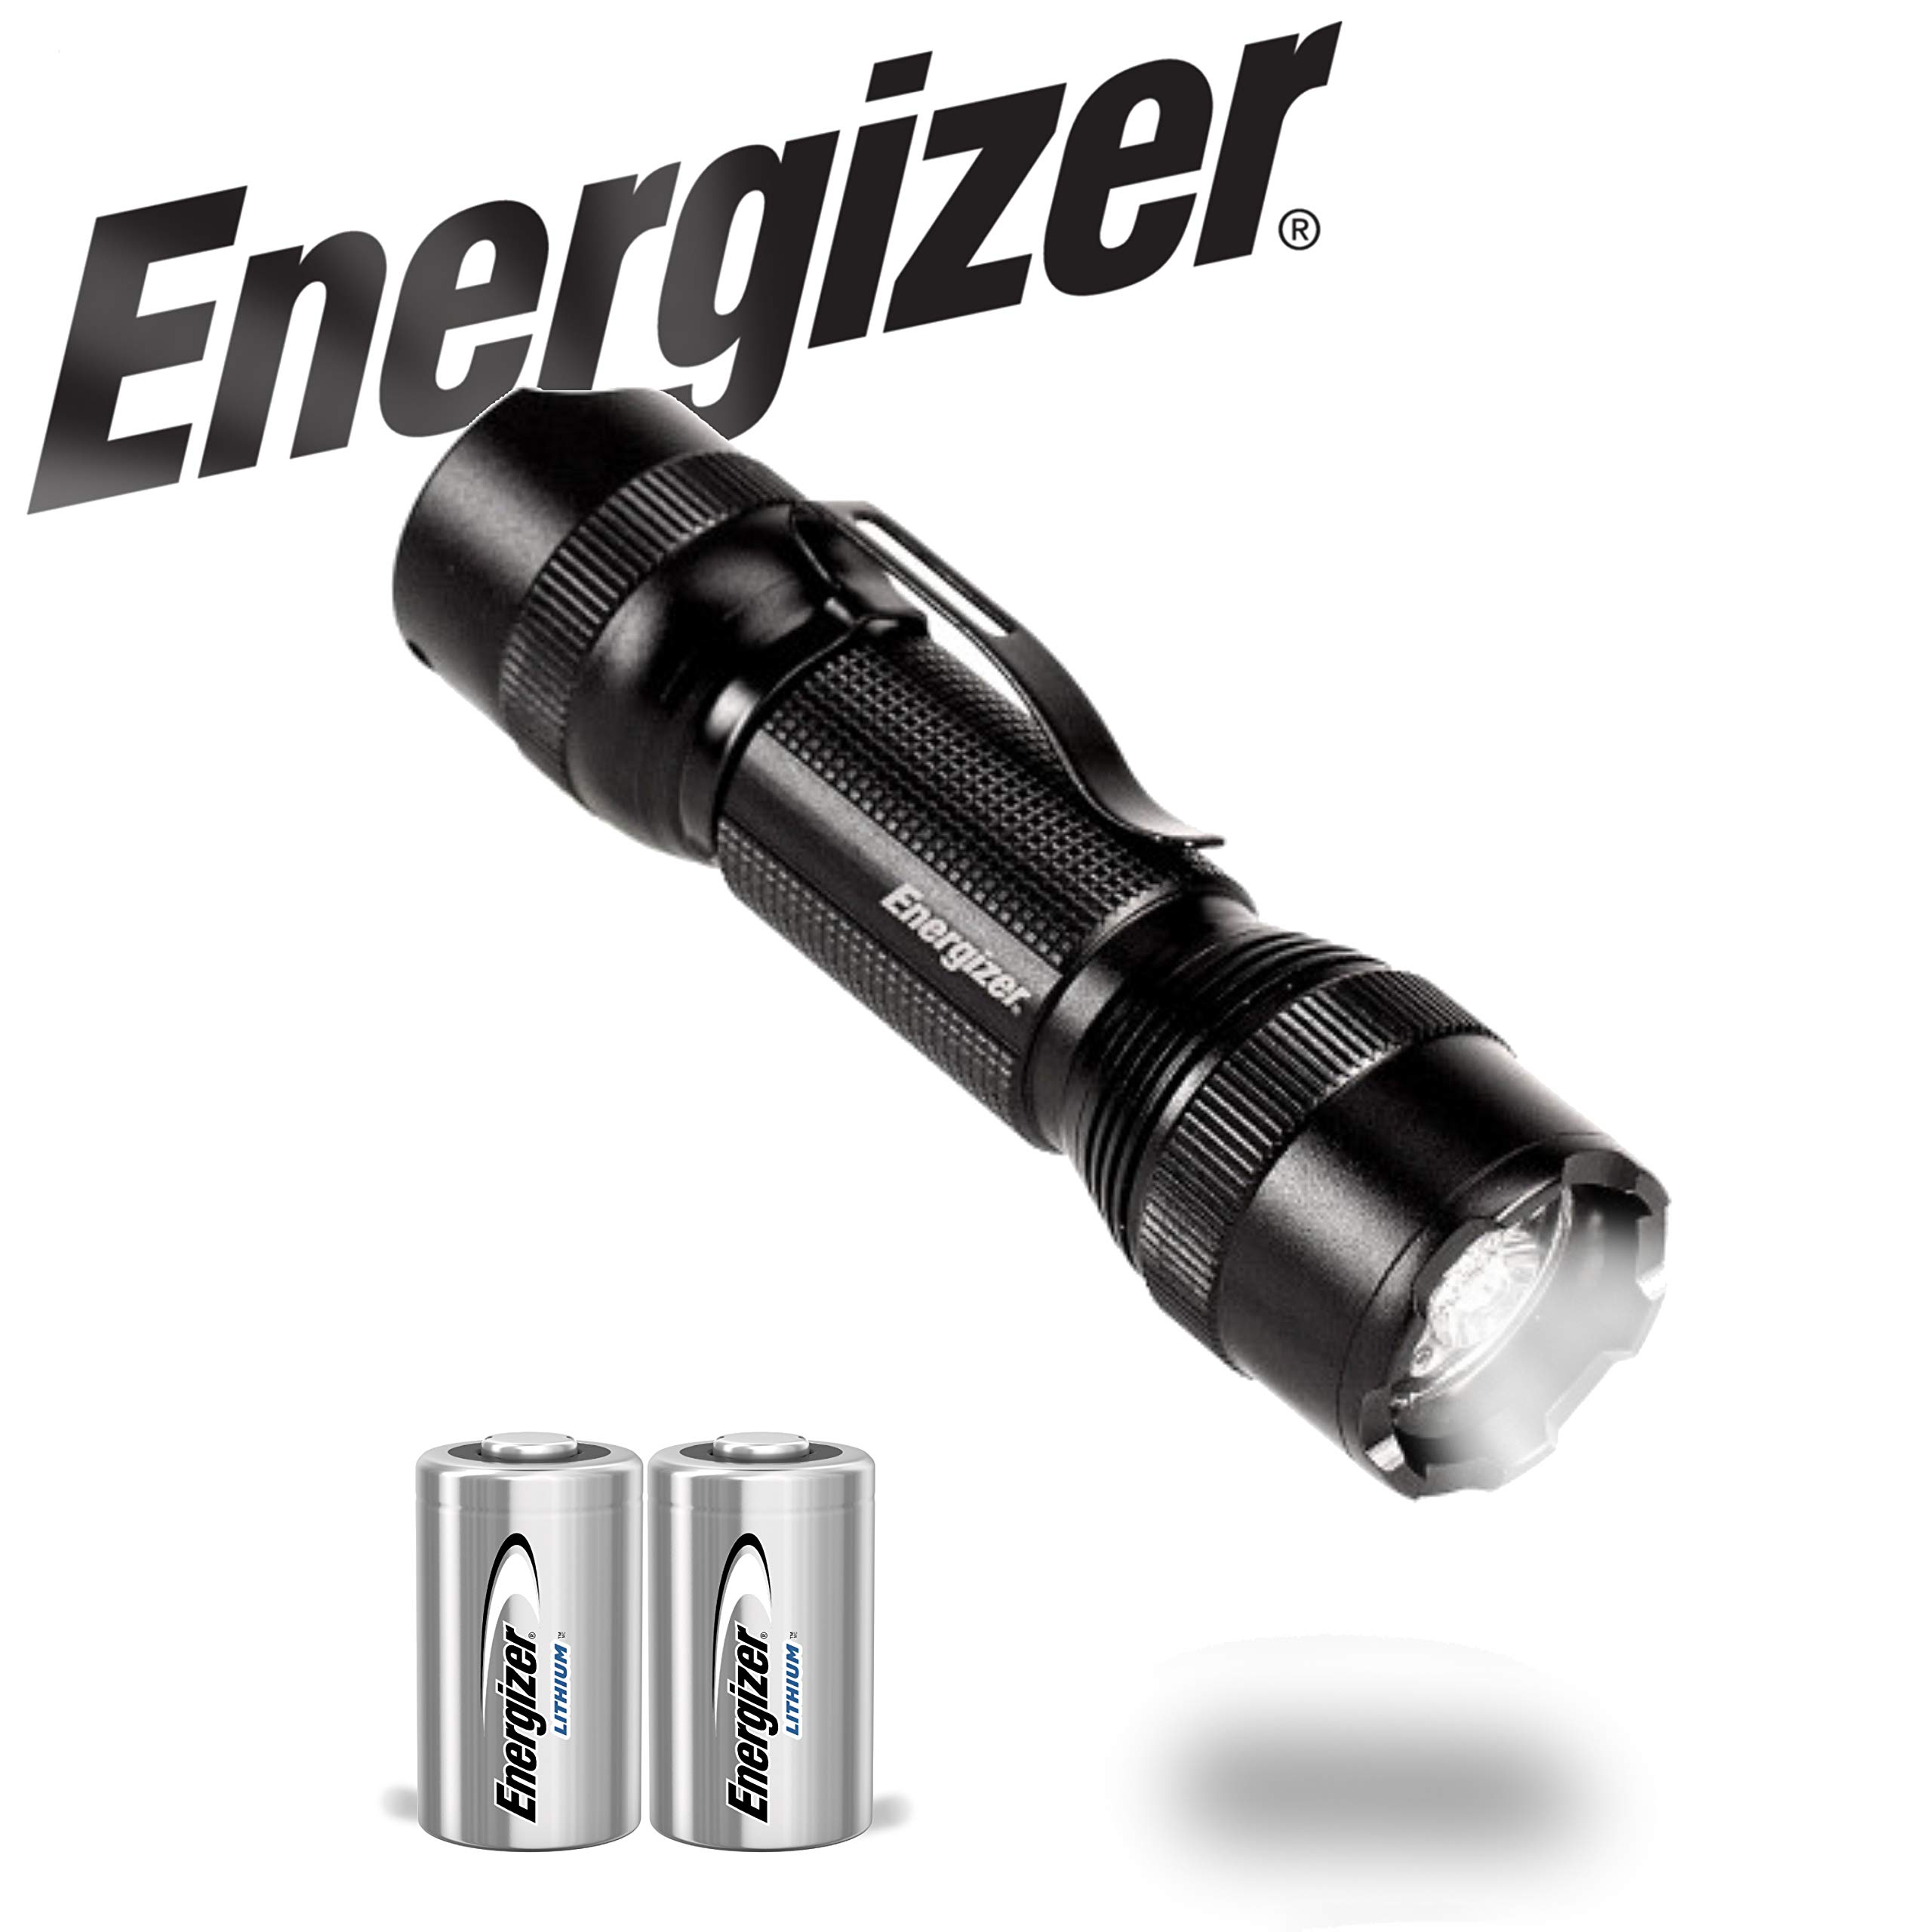 Energizer LED Tactical Handheld Flashlight TAC-700, Ultra Bright 700 High Lumens, 4 Modes, Durable Metal Body, Water Resistant by Energizer